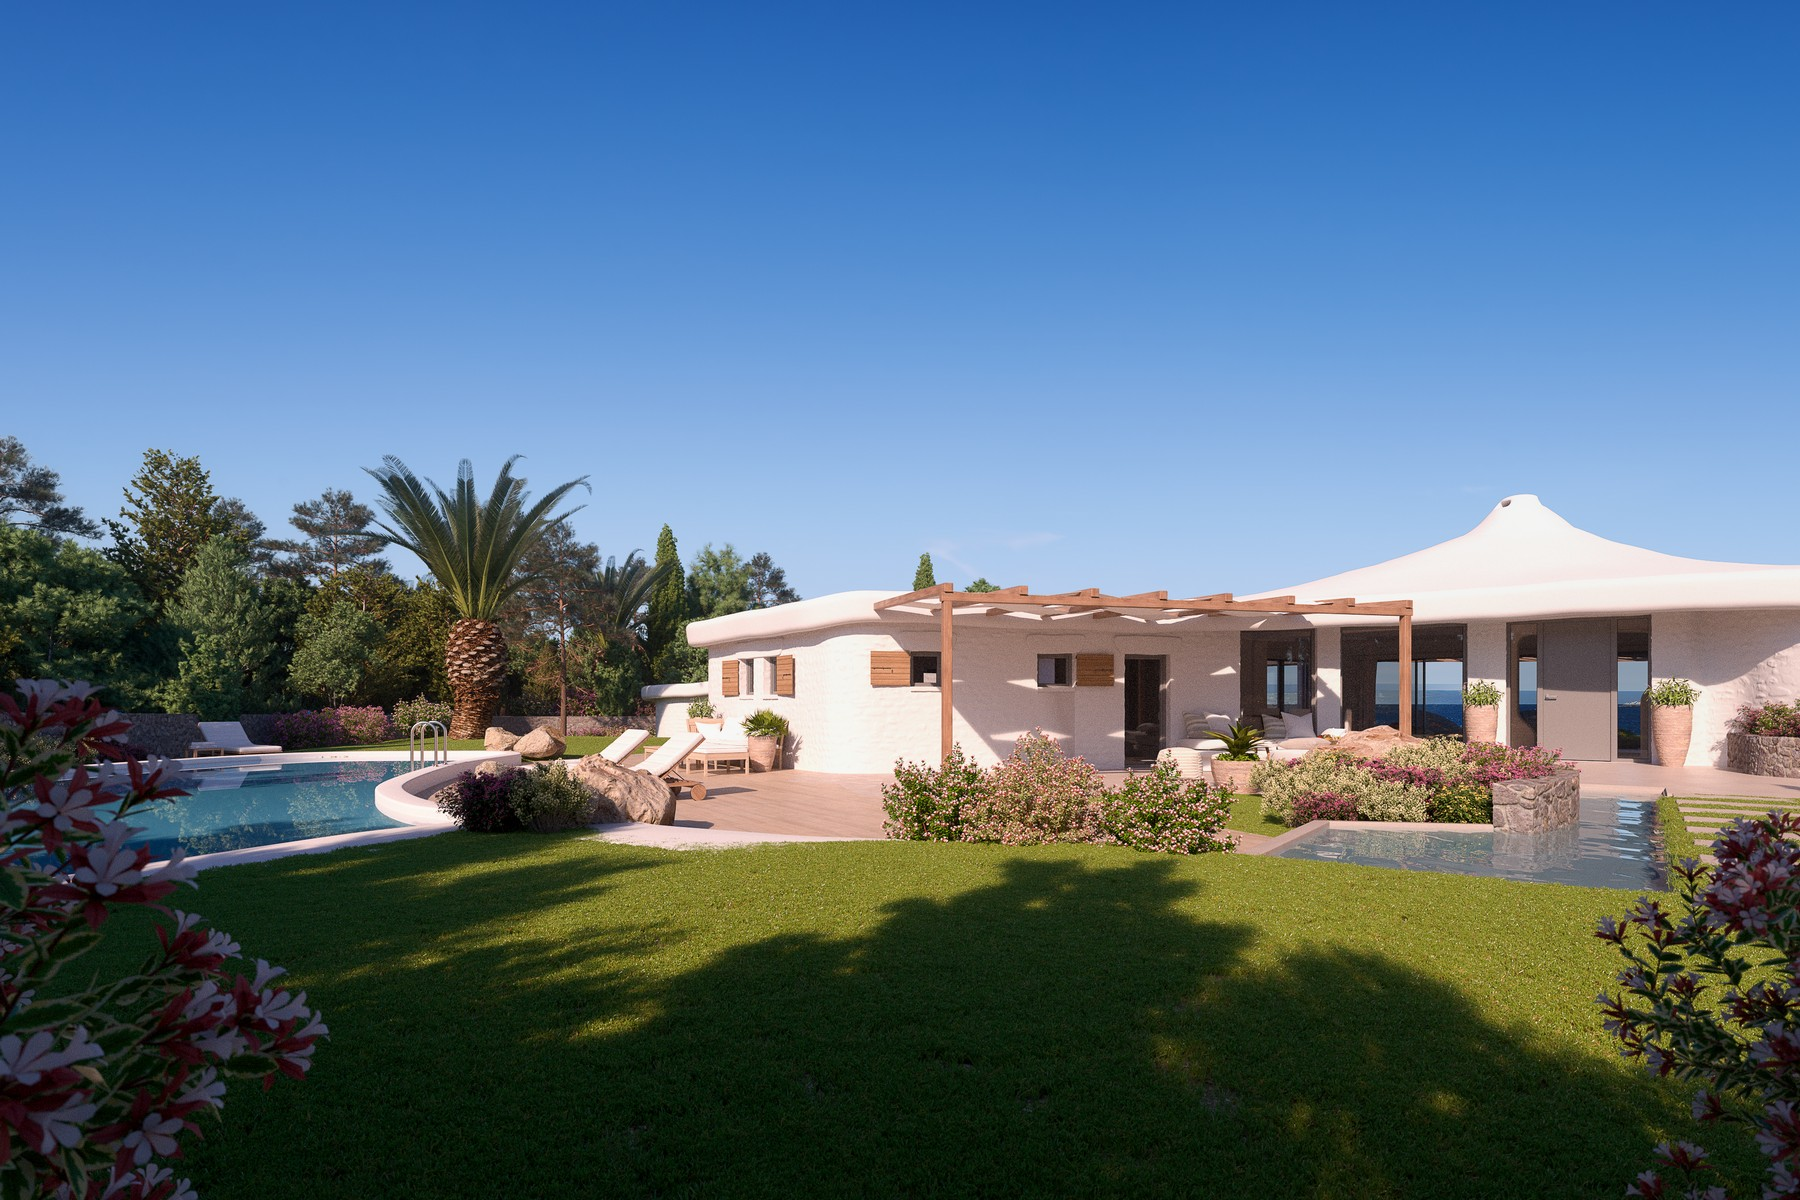 Other Residential for Sale at Wonderful villa in Liscia Renè Porto Cervo, Olbia Tempio Italy